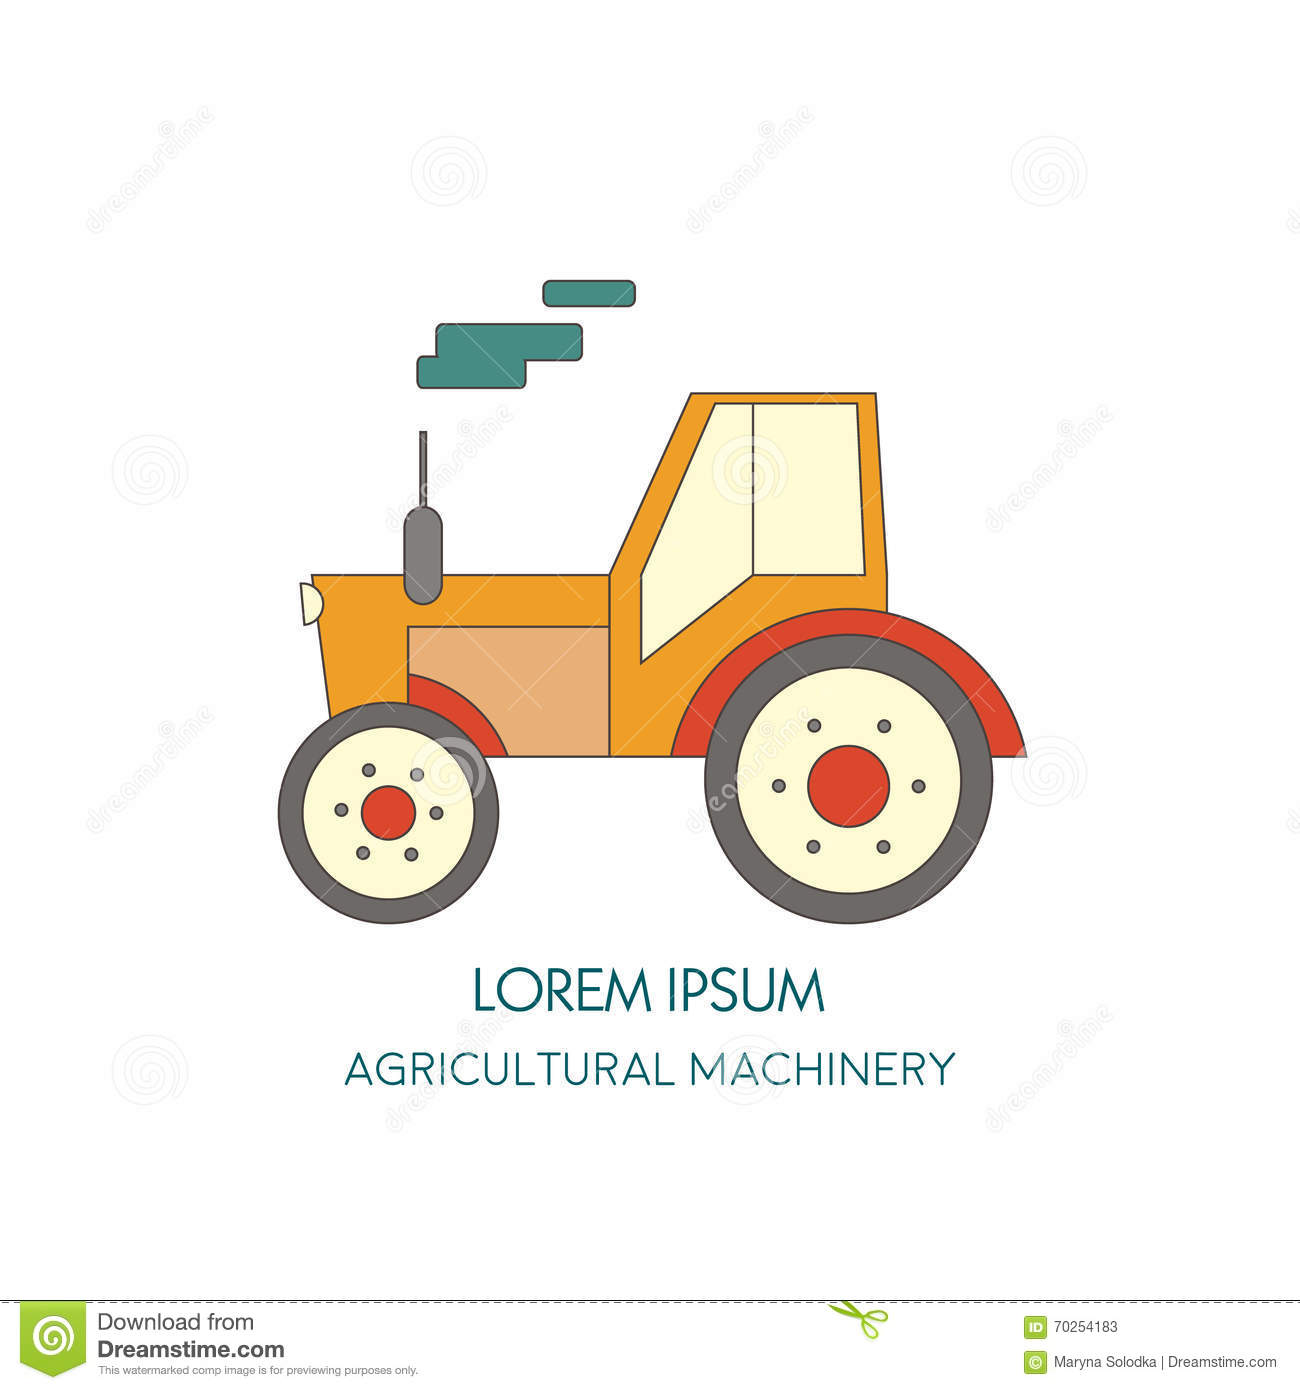 Agricultural Machinery Design : Tractor icon agricultural machinery vector illustration